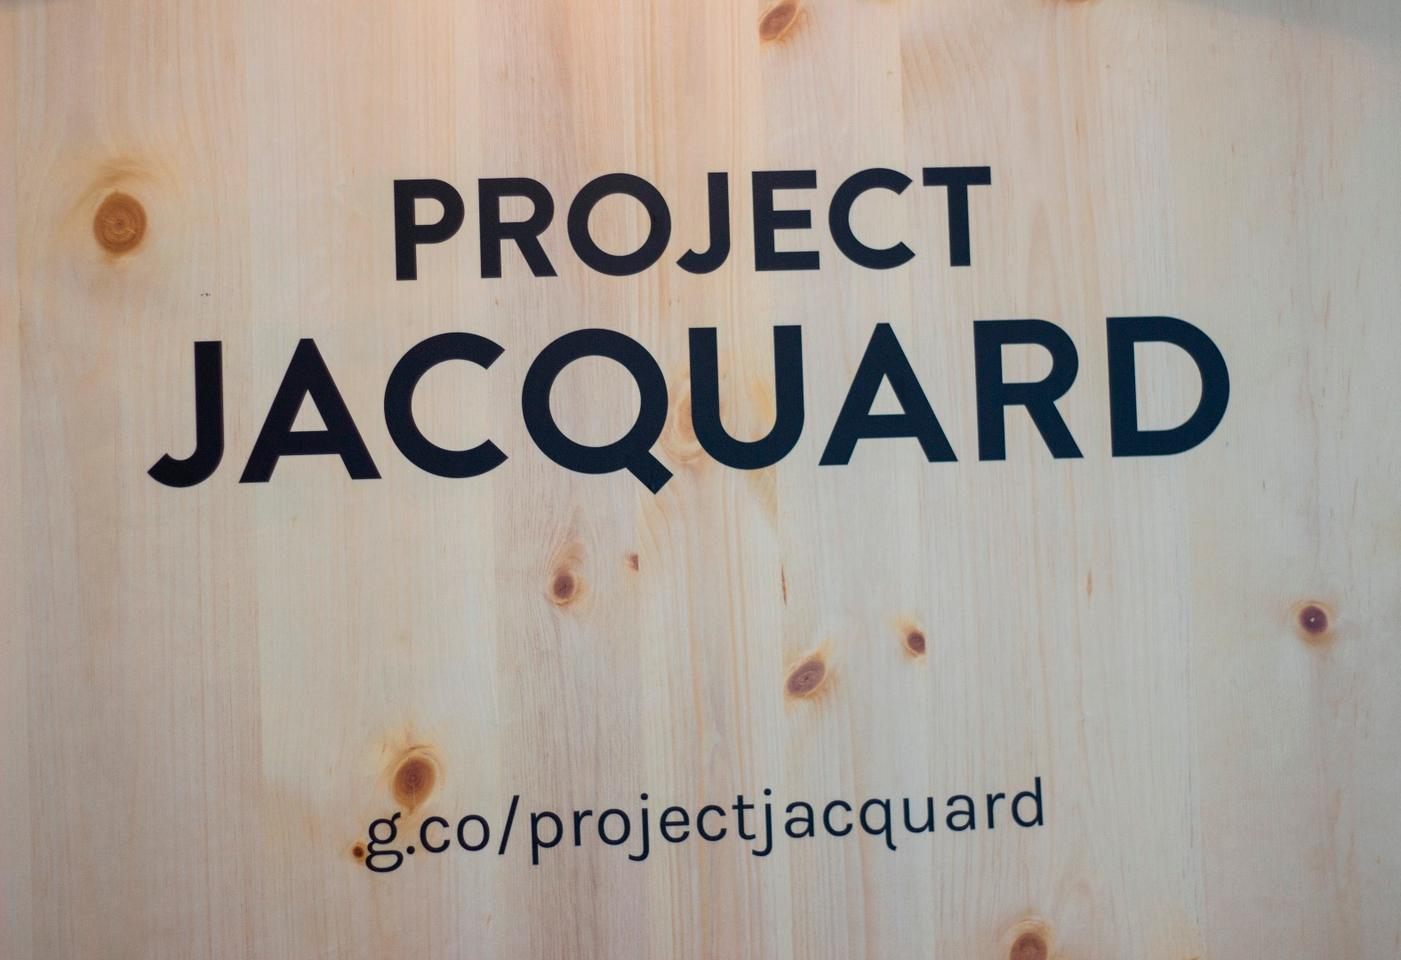 We're welcomed to Google's Project Jacquard demo at Google I/O 2015